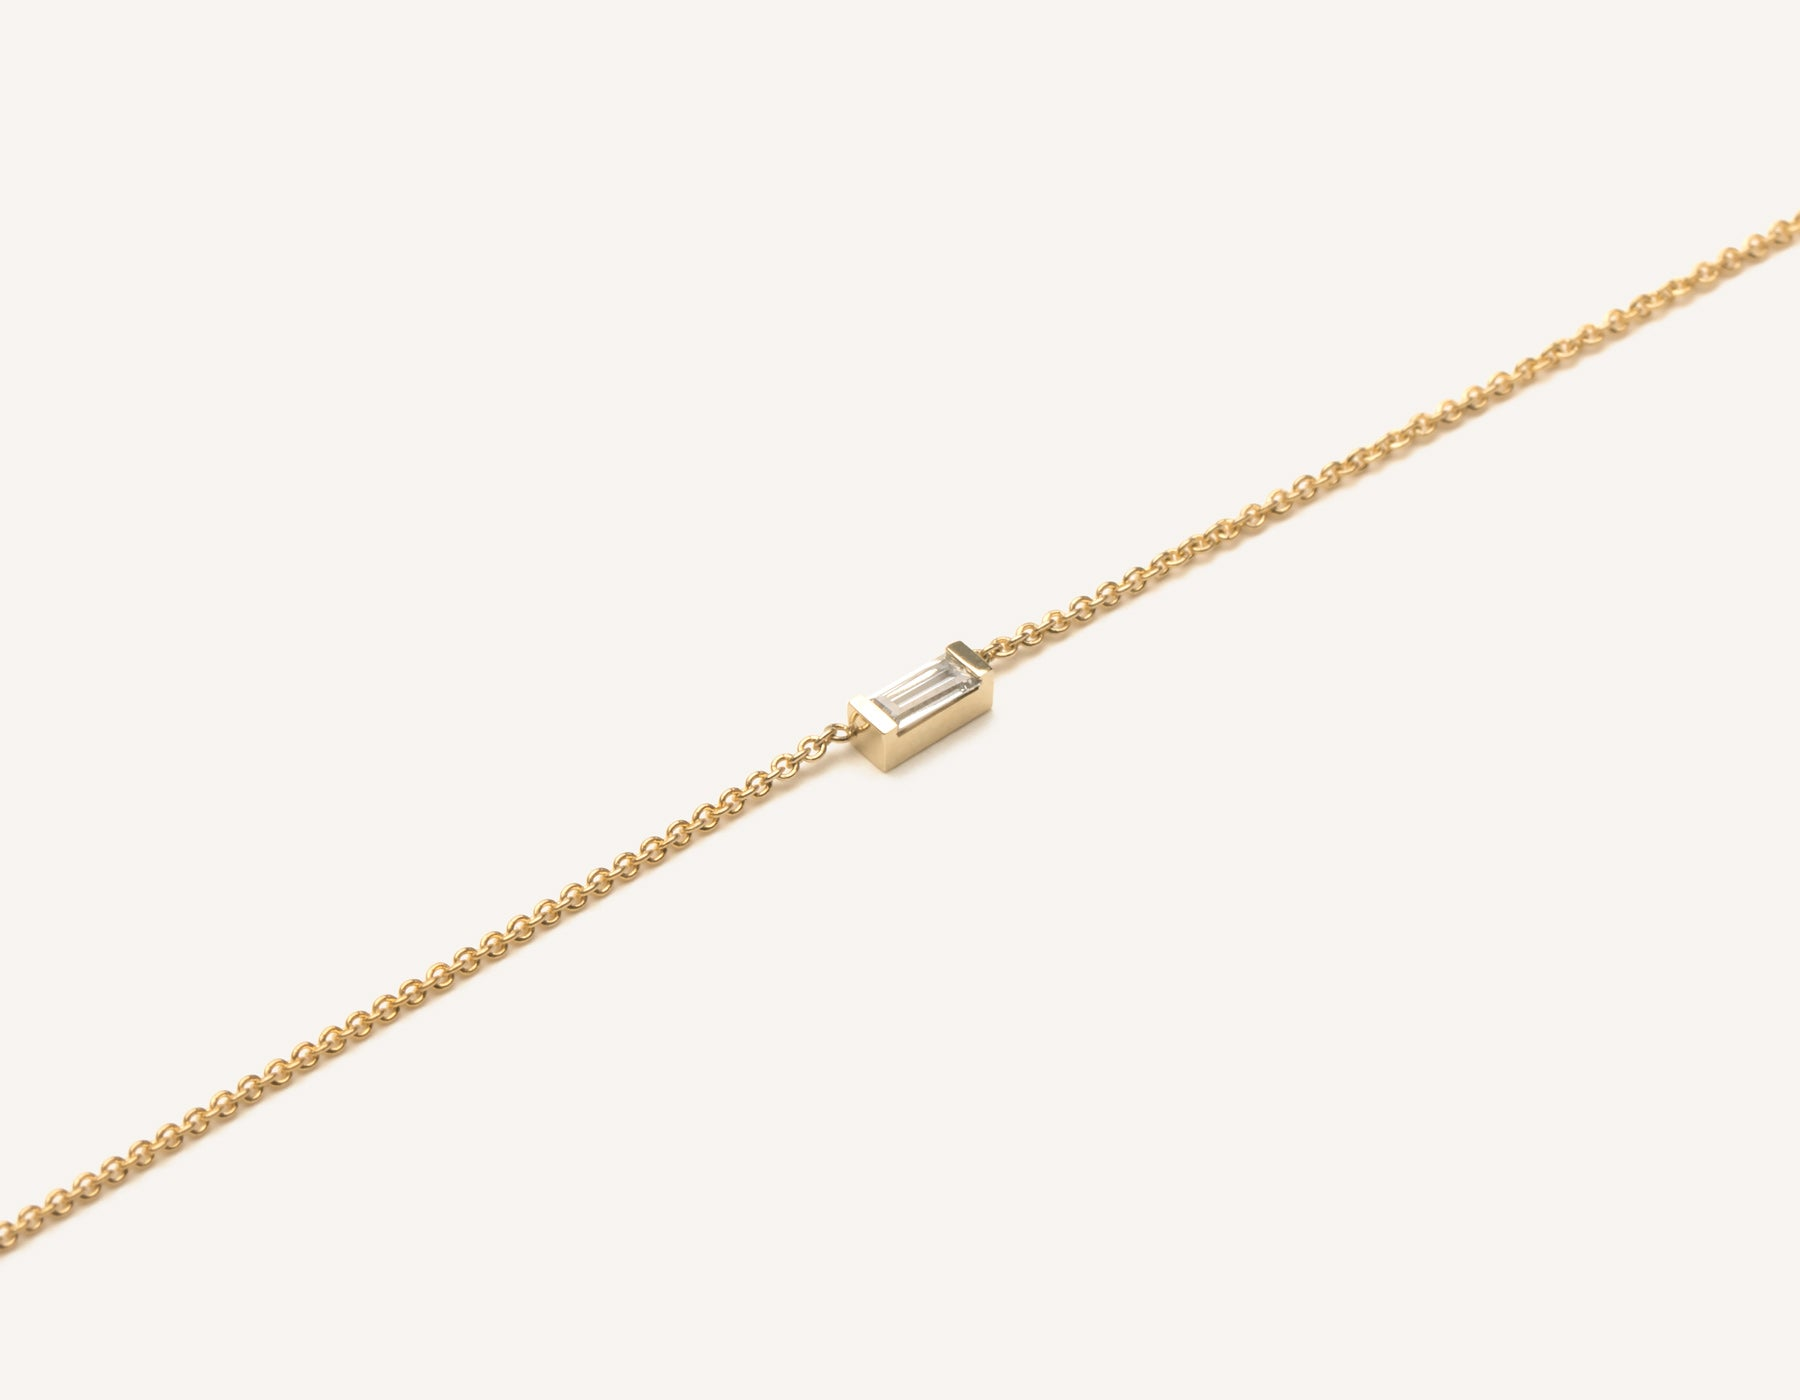 Simple delicate 14k Solid Gold Baguette Diamond Necklace by Vrai and Oro jewelry, 14K Yellow Gold